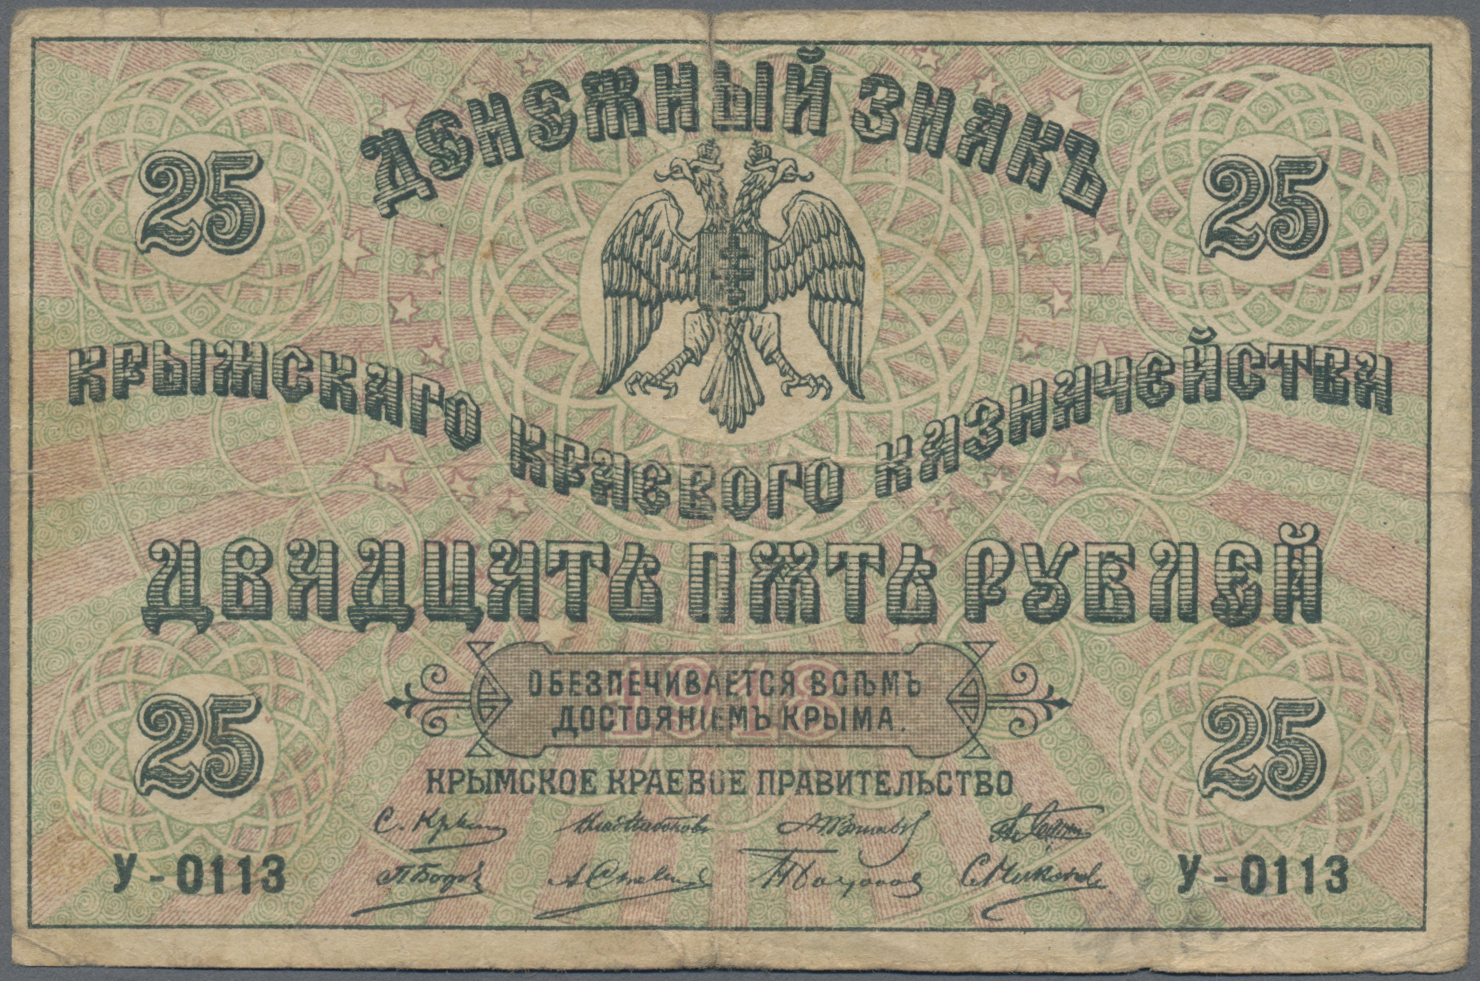 Lot 01124 - Ukraina / Ukraine | Banknoten  -  Auktionshaus Christoph Gärtner GmbH & Co. KG Sale #48 The Banknotes